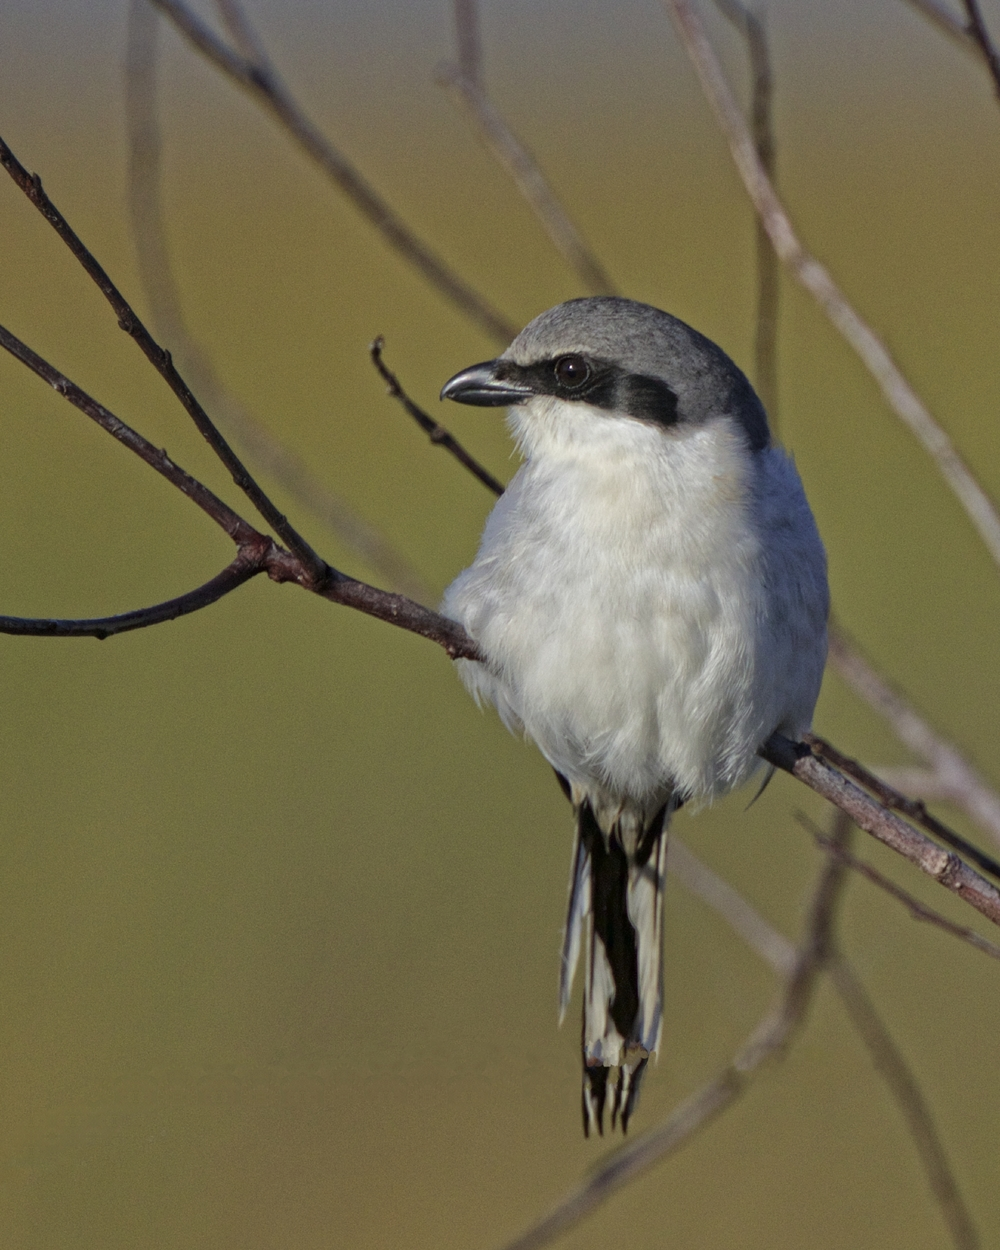 Loggerhead Shrike, one of the few known natural predators of the Lubber Grasshopper